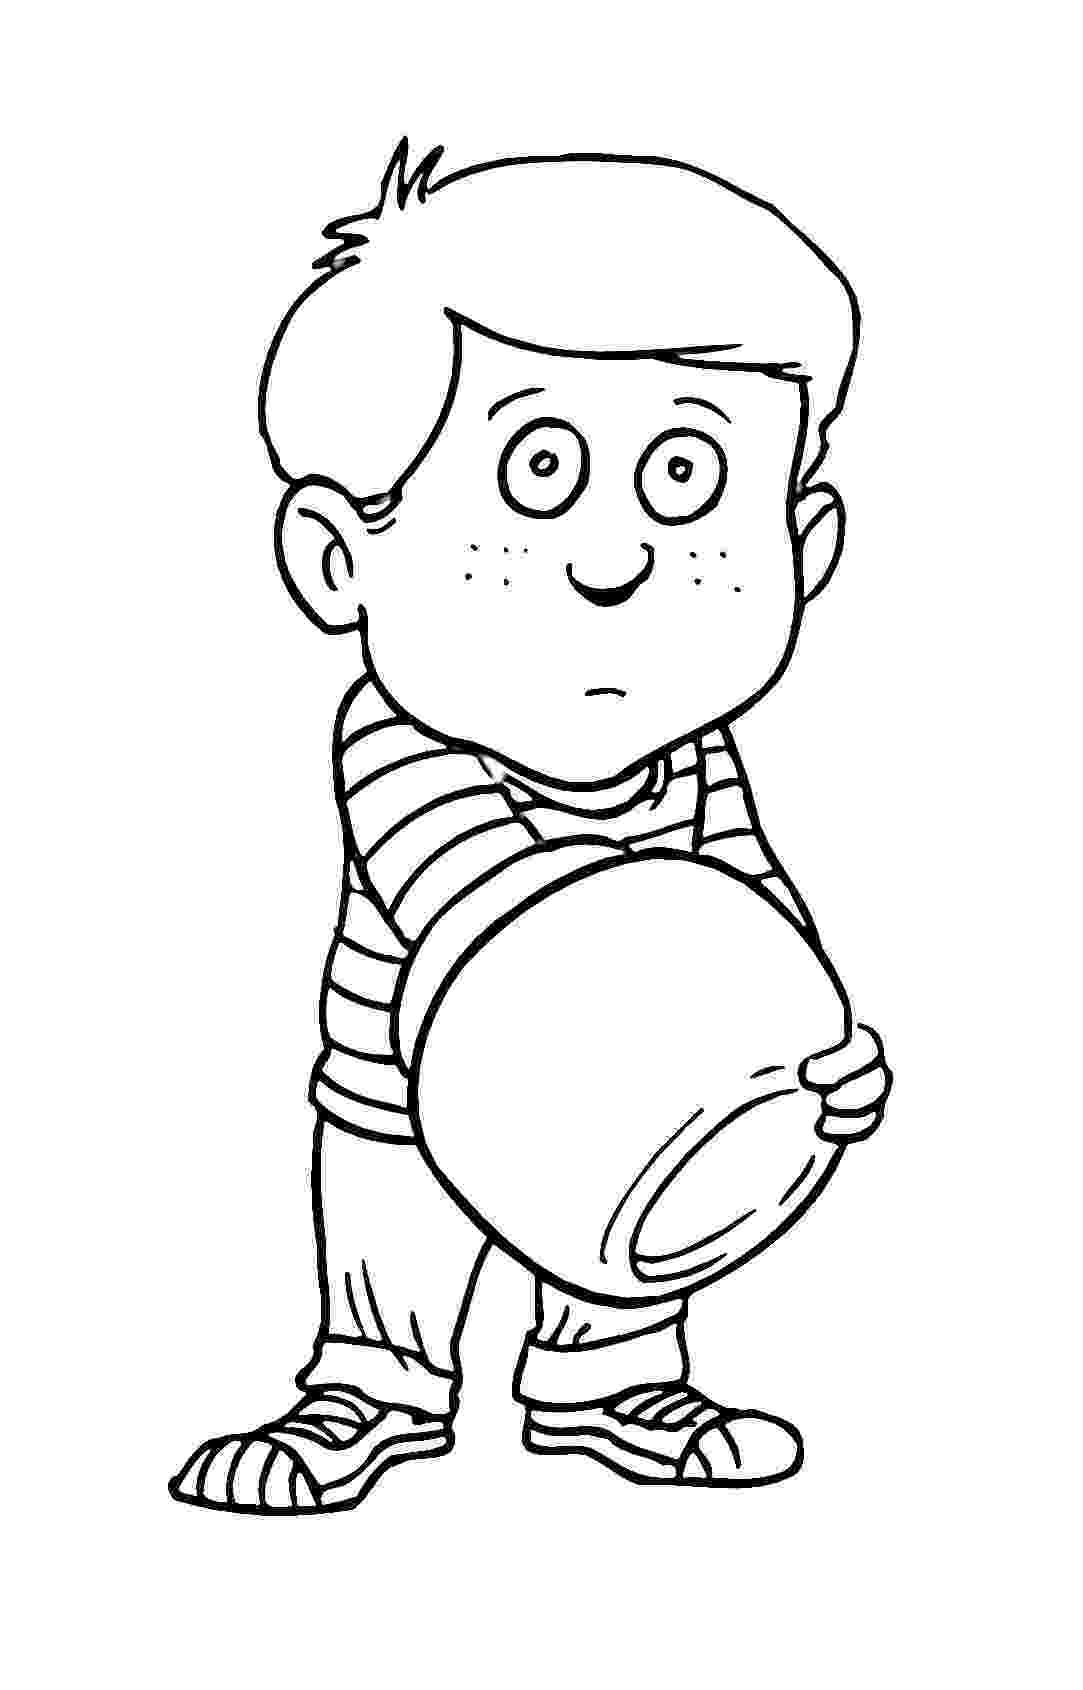 printable coloring pages for boys free printable boy coloring pages for kids boys coloring printable for pages